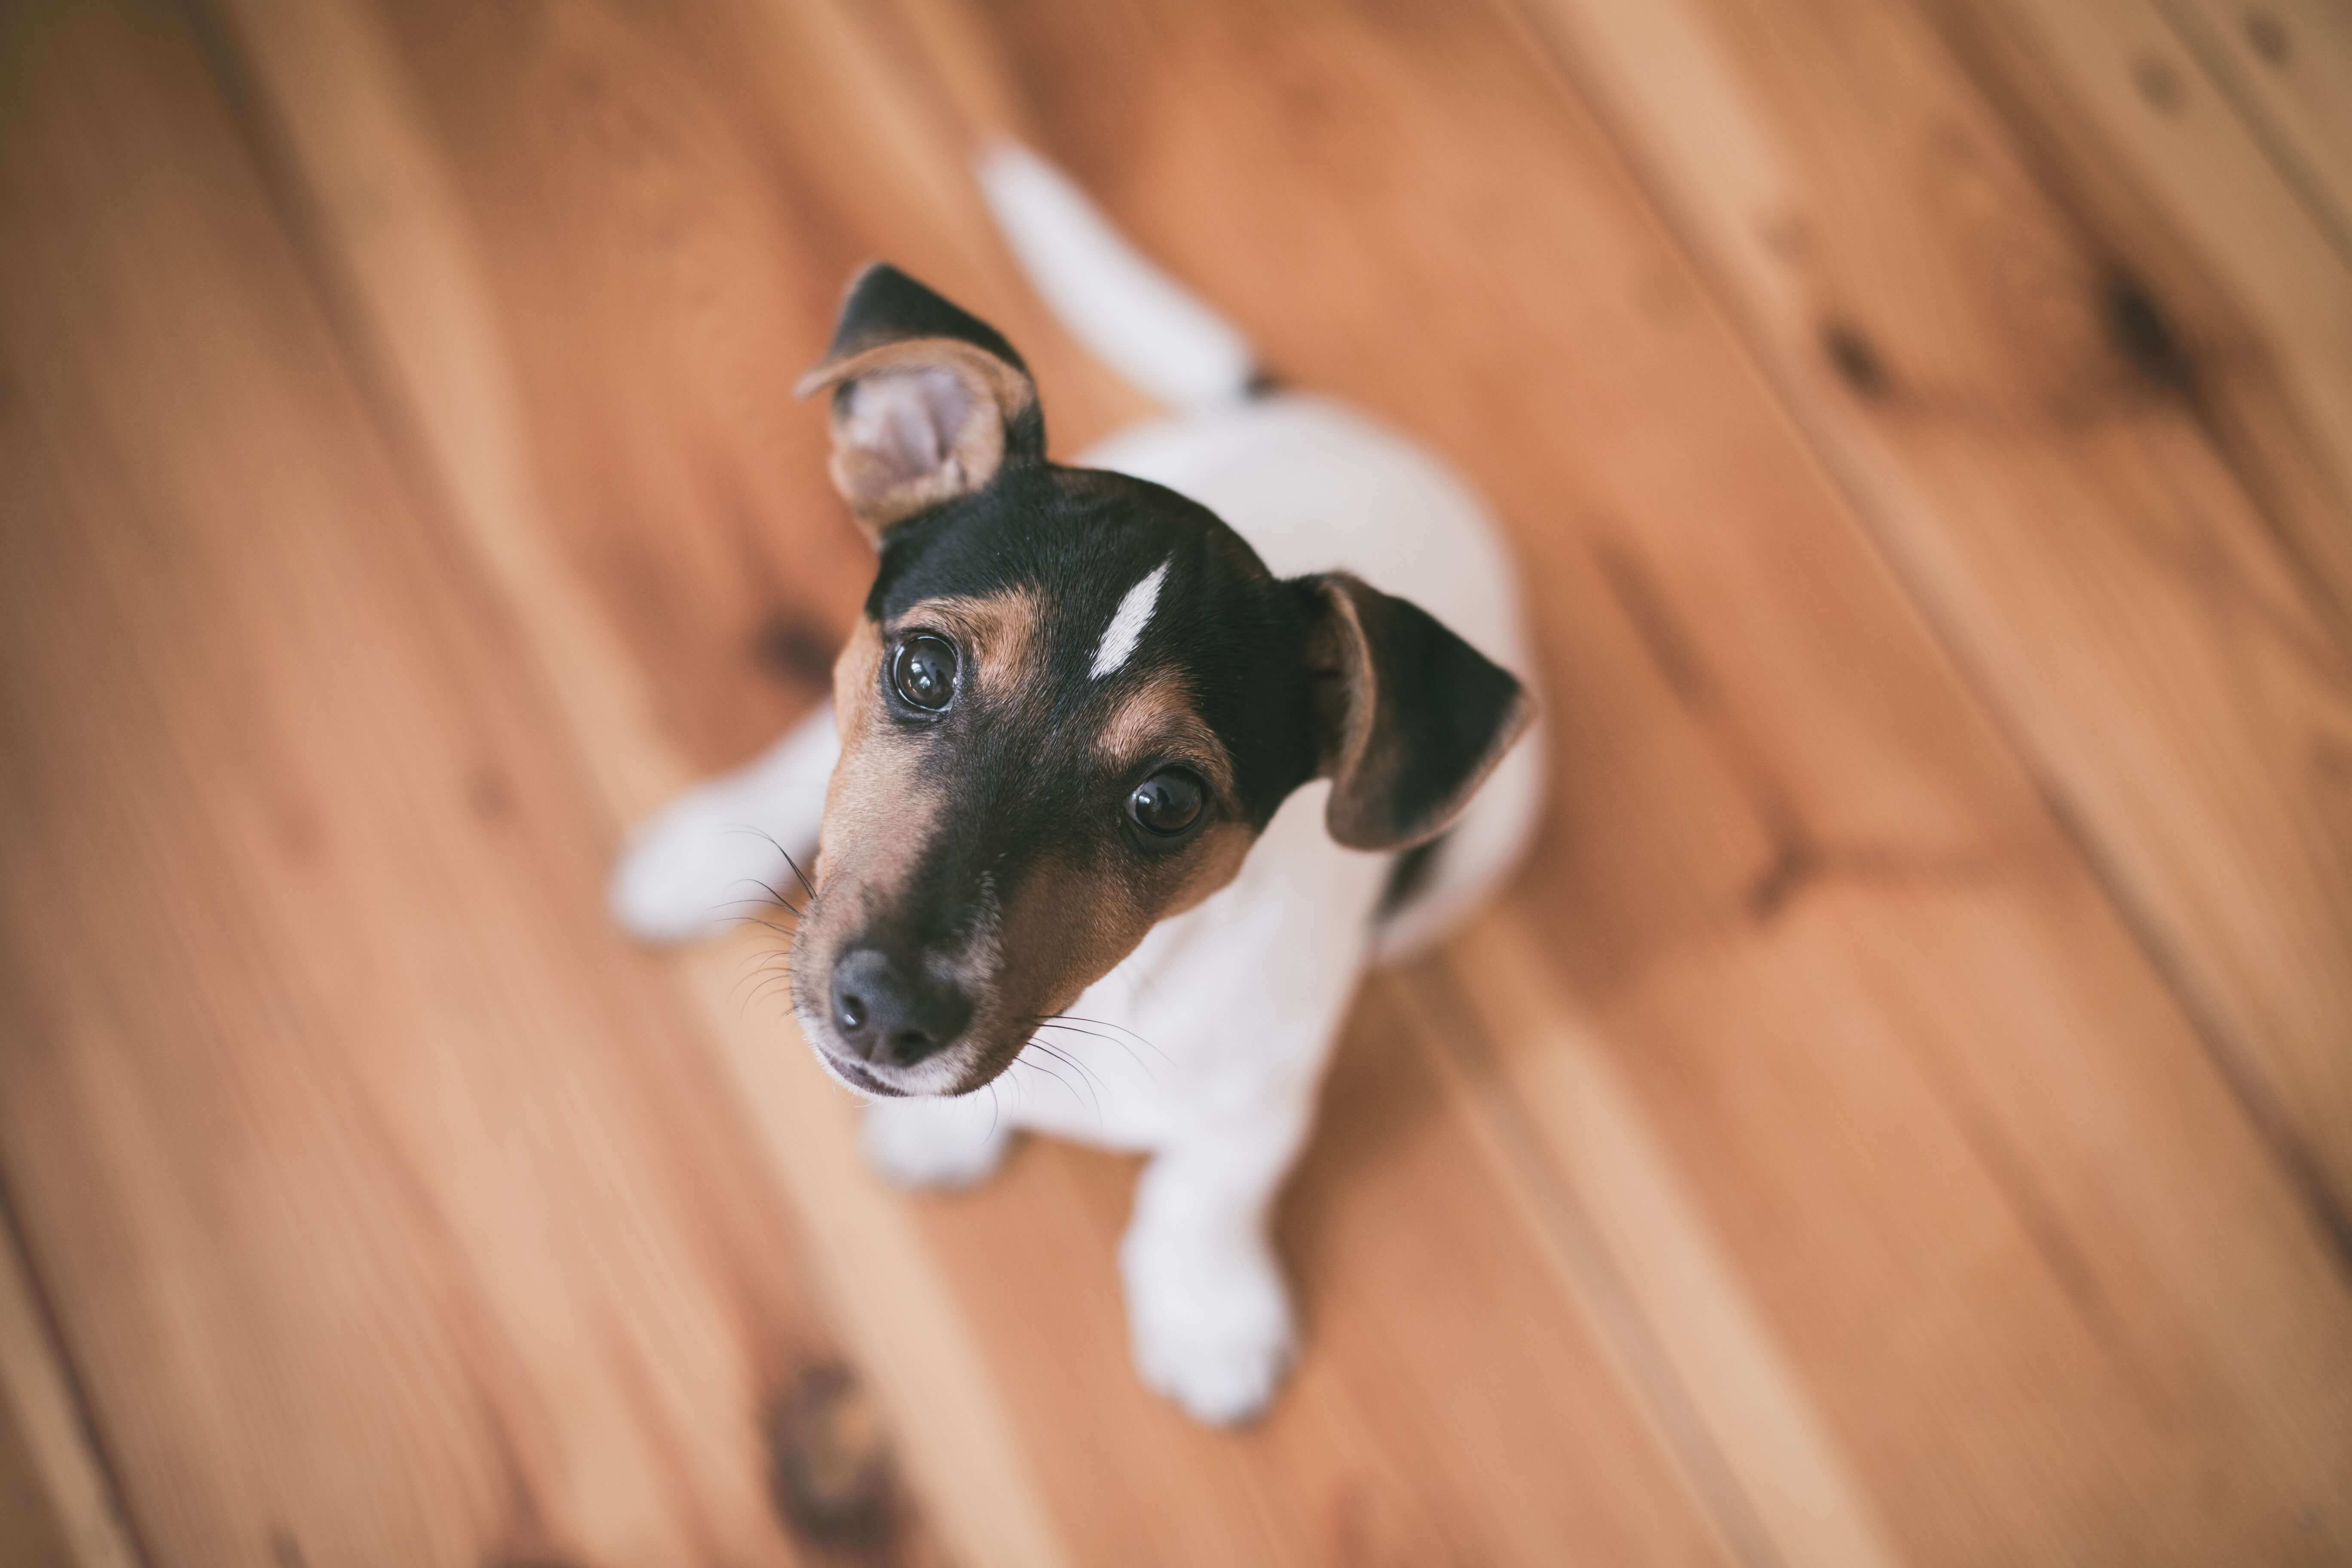 Owning a Dog in Spain: Cost, Registration & Dog Insurance